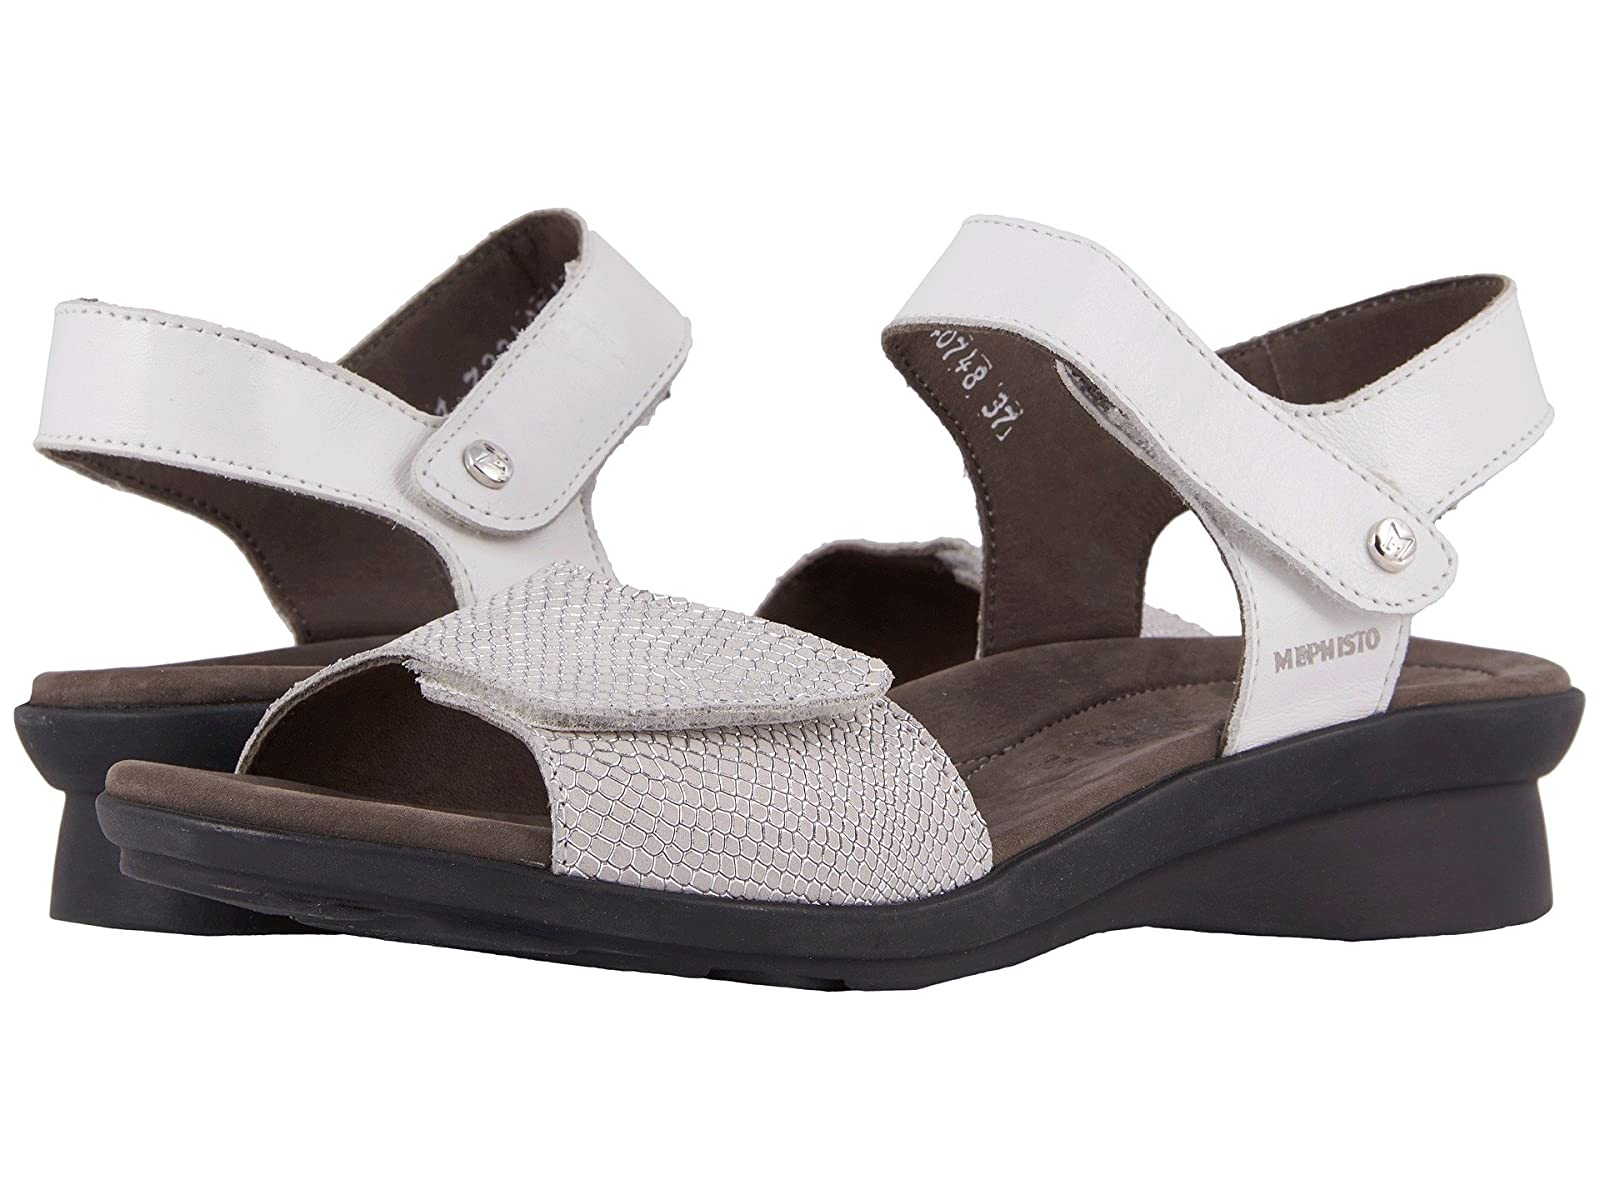 Mephisto PattieAtmospheric grades have affordable shoes